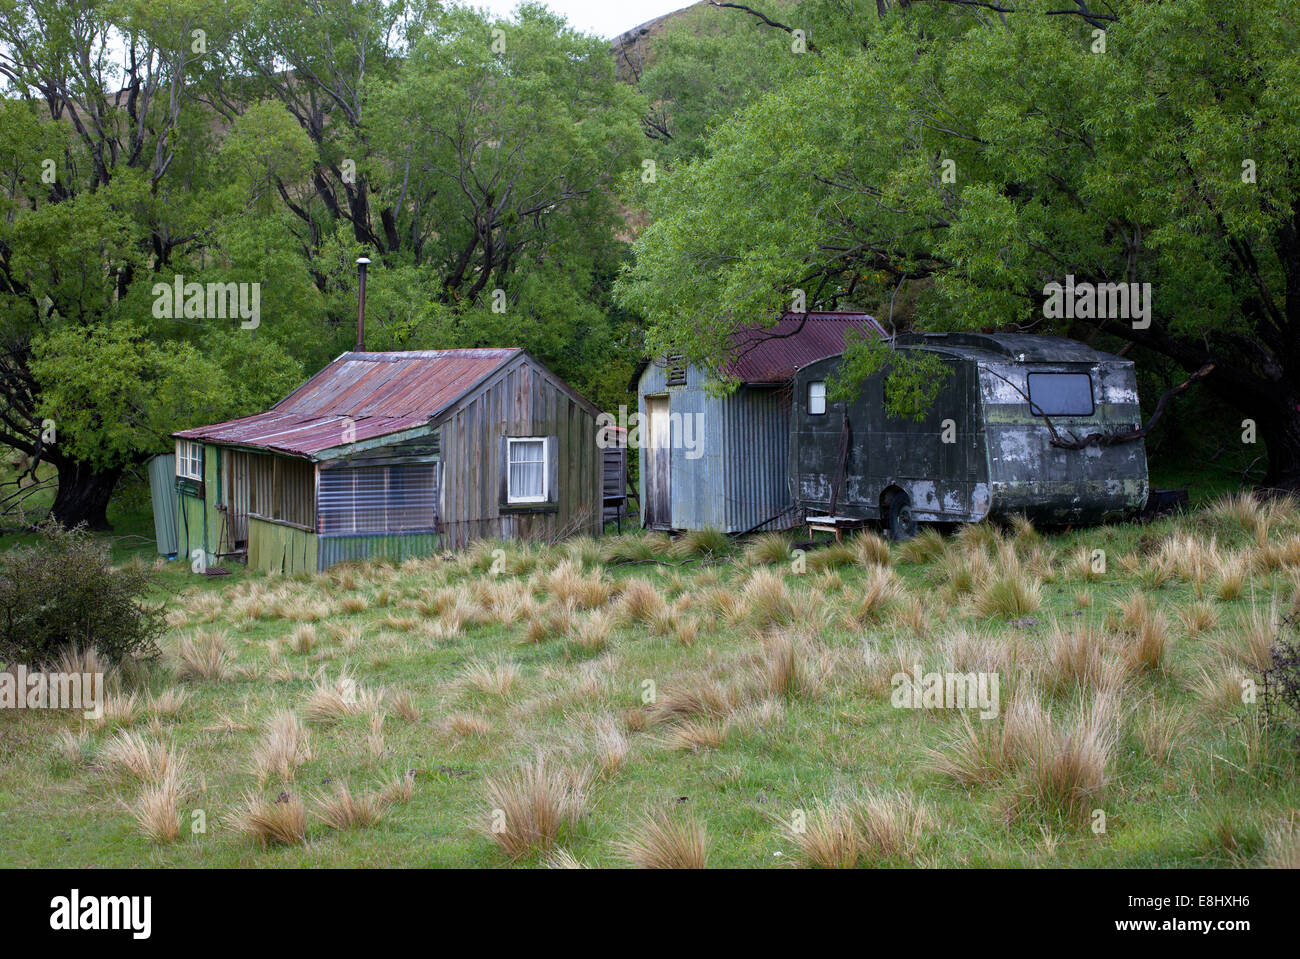 A little place in the country - old house, outhouses, long-drop dunny and caravan. Known locally as a Bach or Crib. - Stock Image